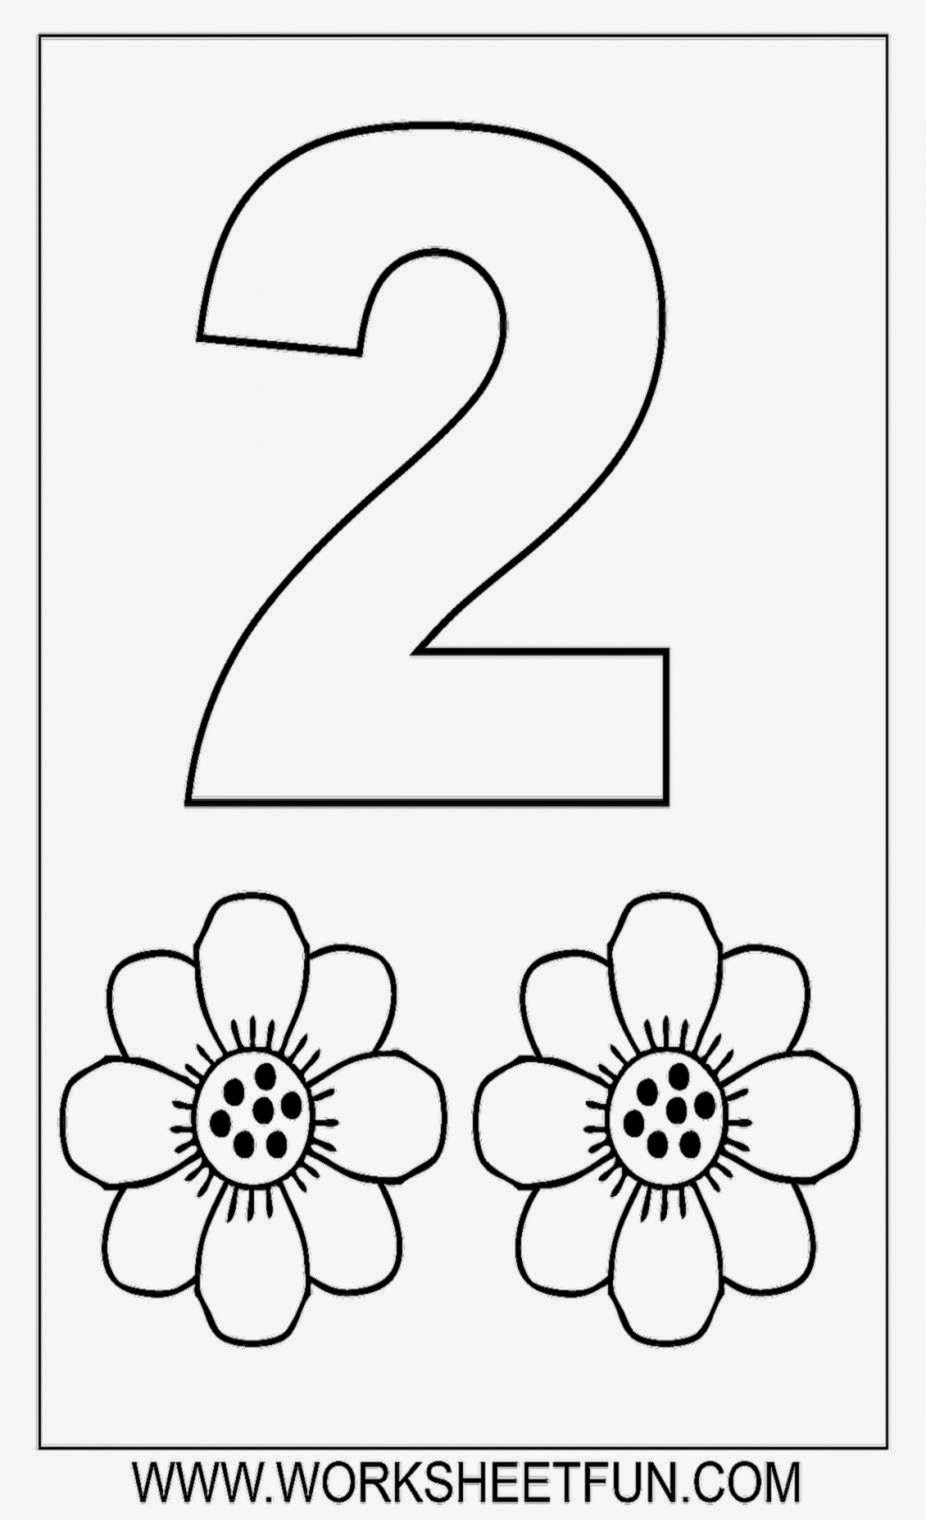 Numbers Coloring Pages  Printable Color By Number Sheets